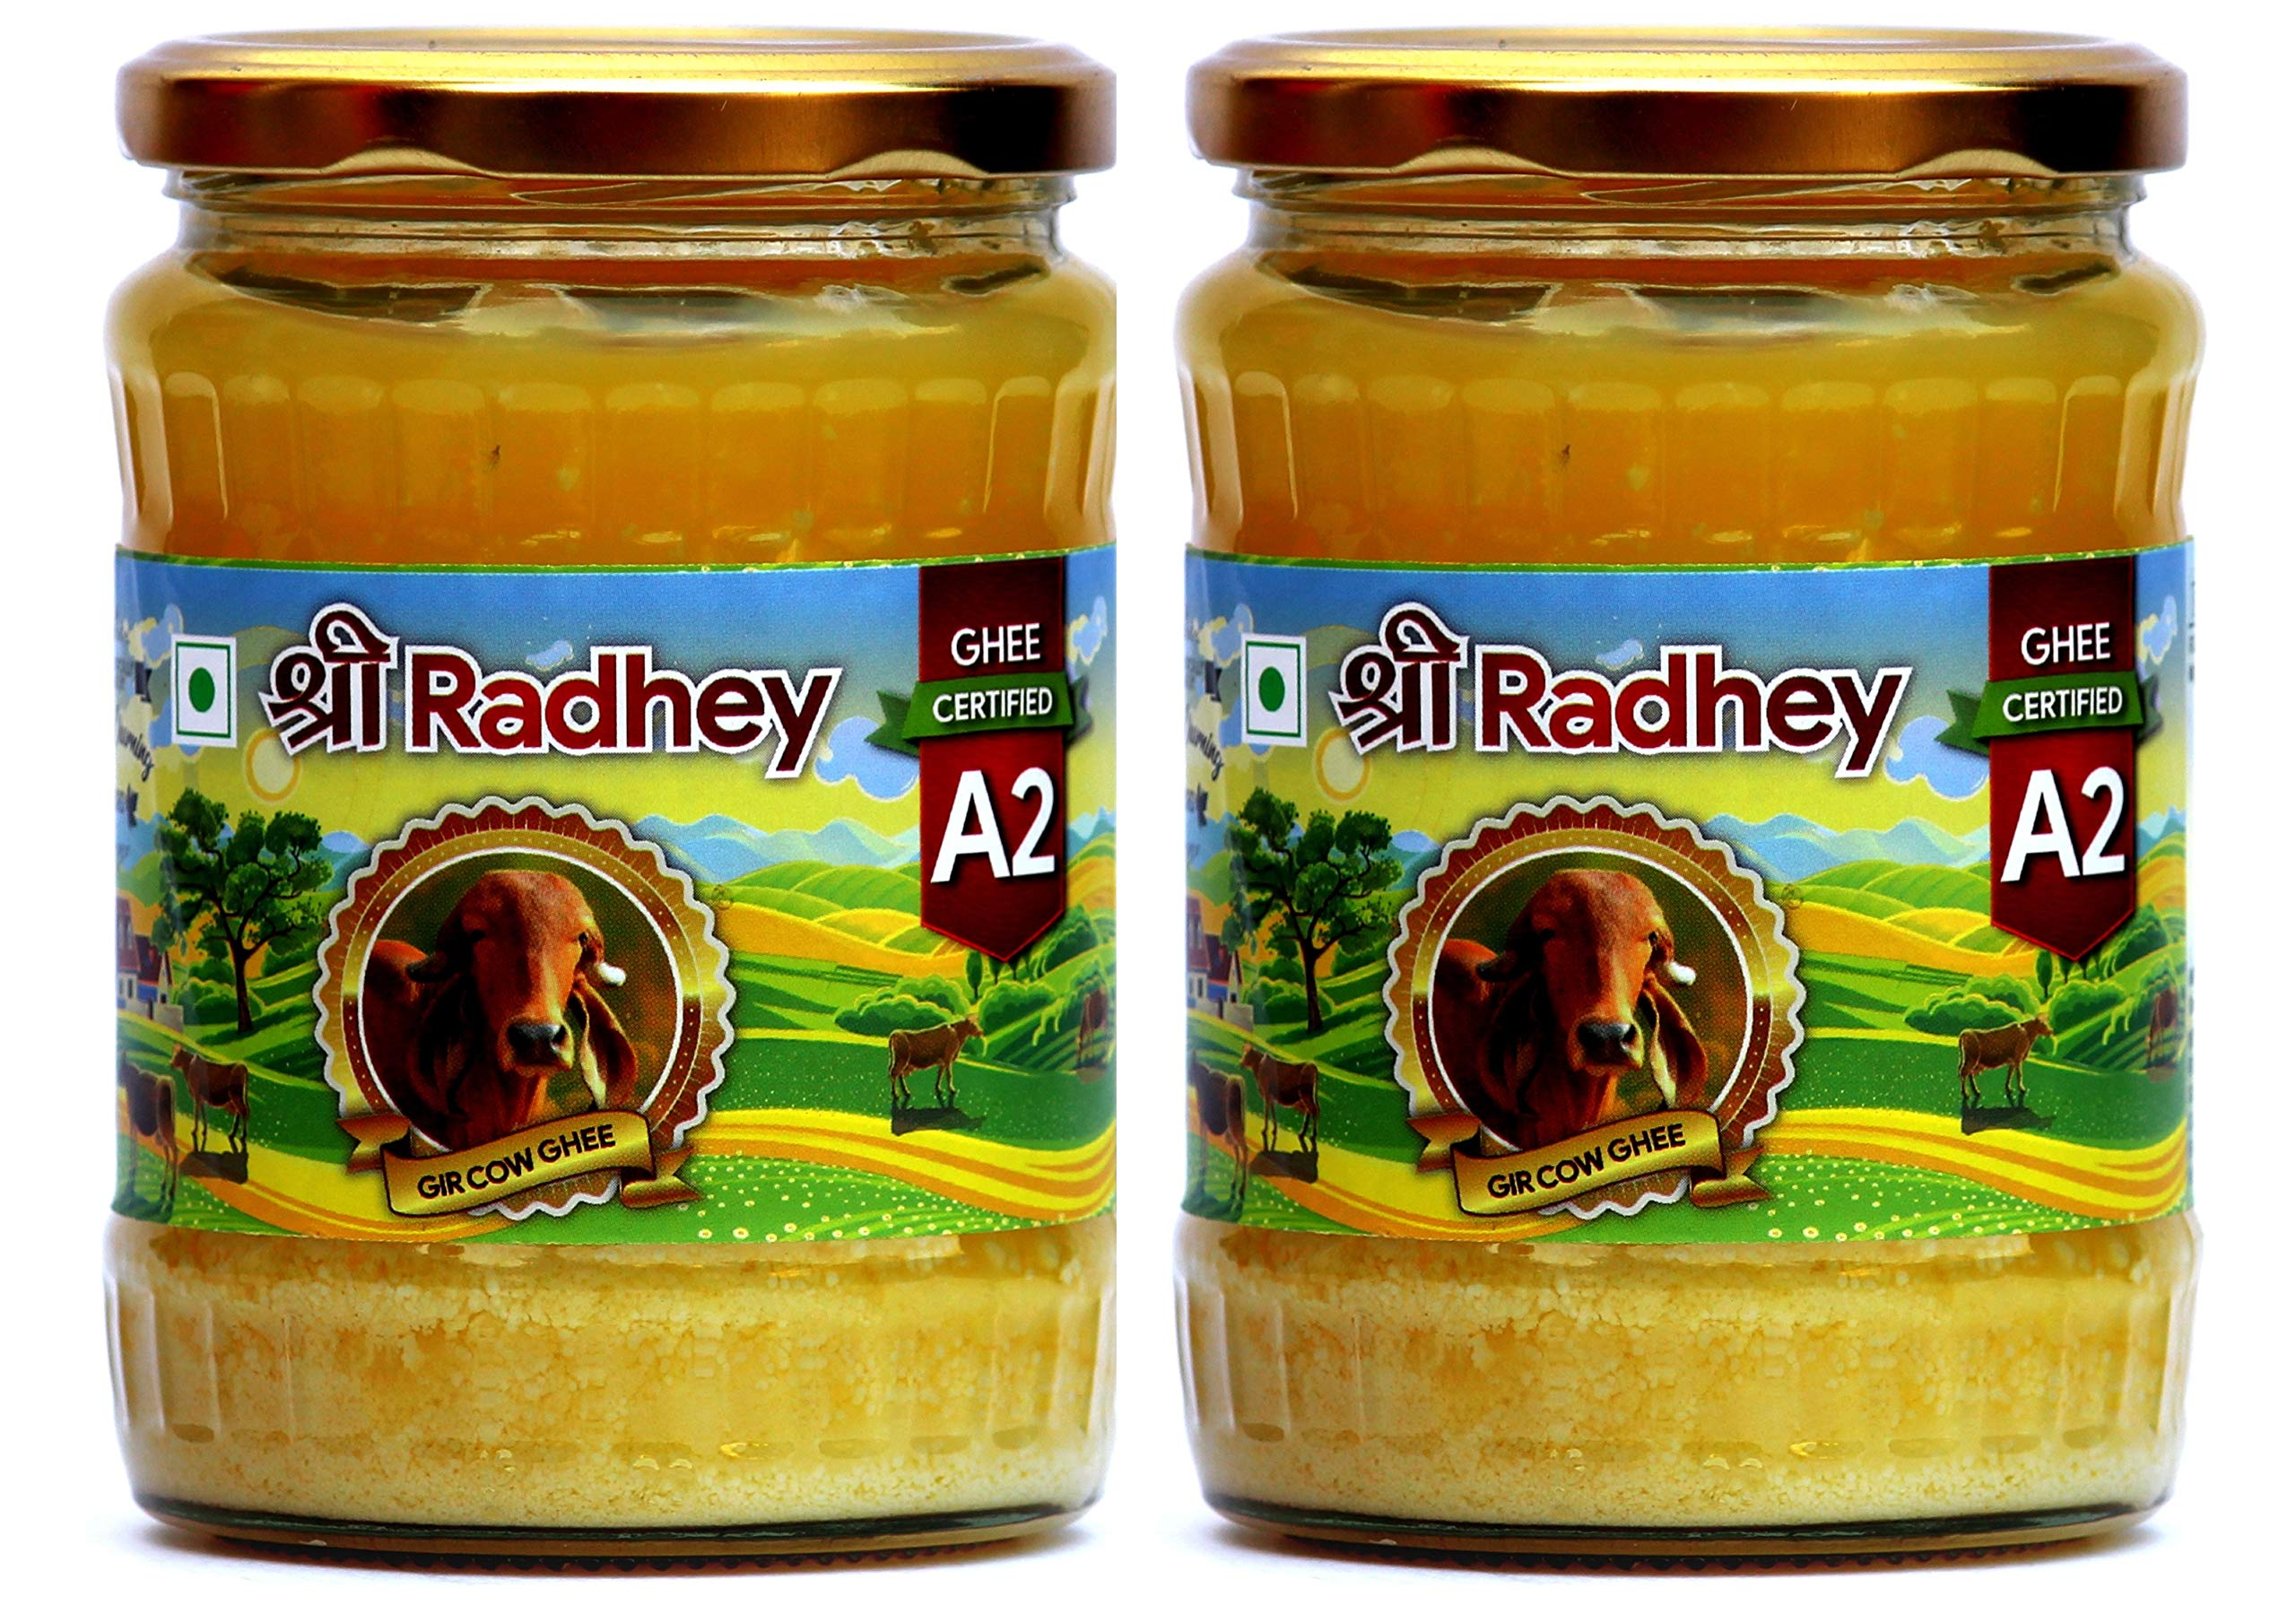 Shree Radhey Certified A2 Gir Cow Ghee - Gluten Free - (Traditionaly Hand Churned) (500 ml X 2) 33.8 OZ